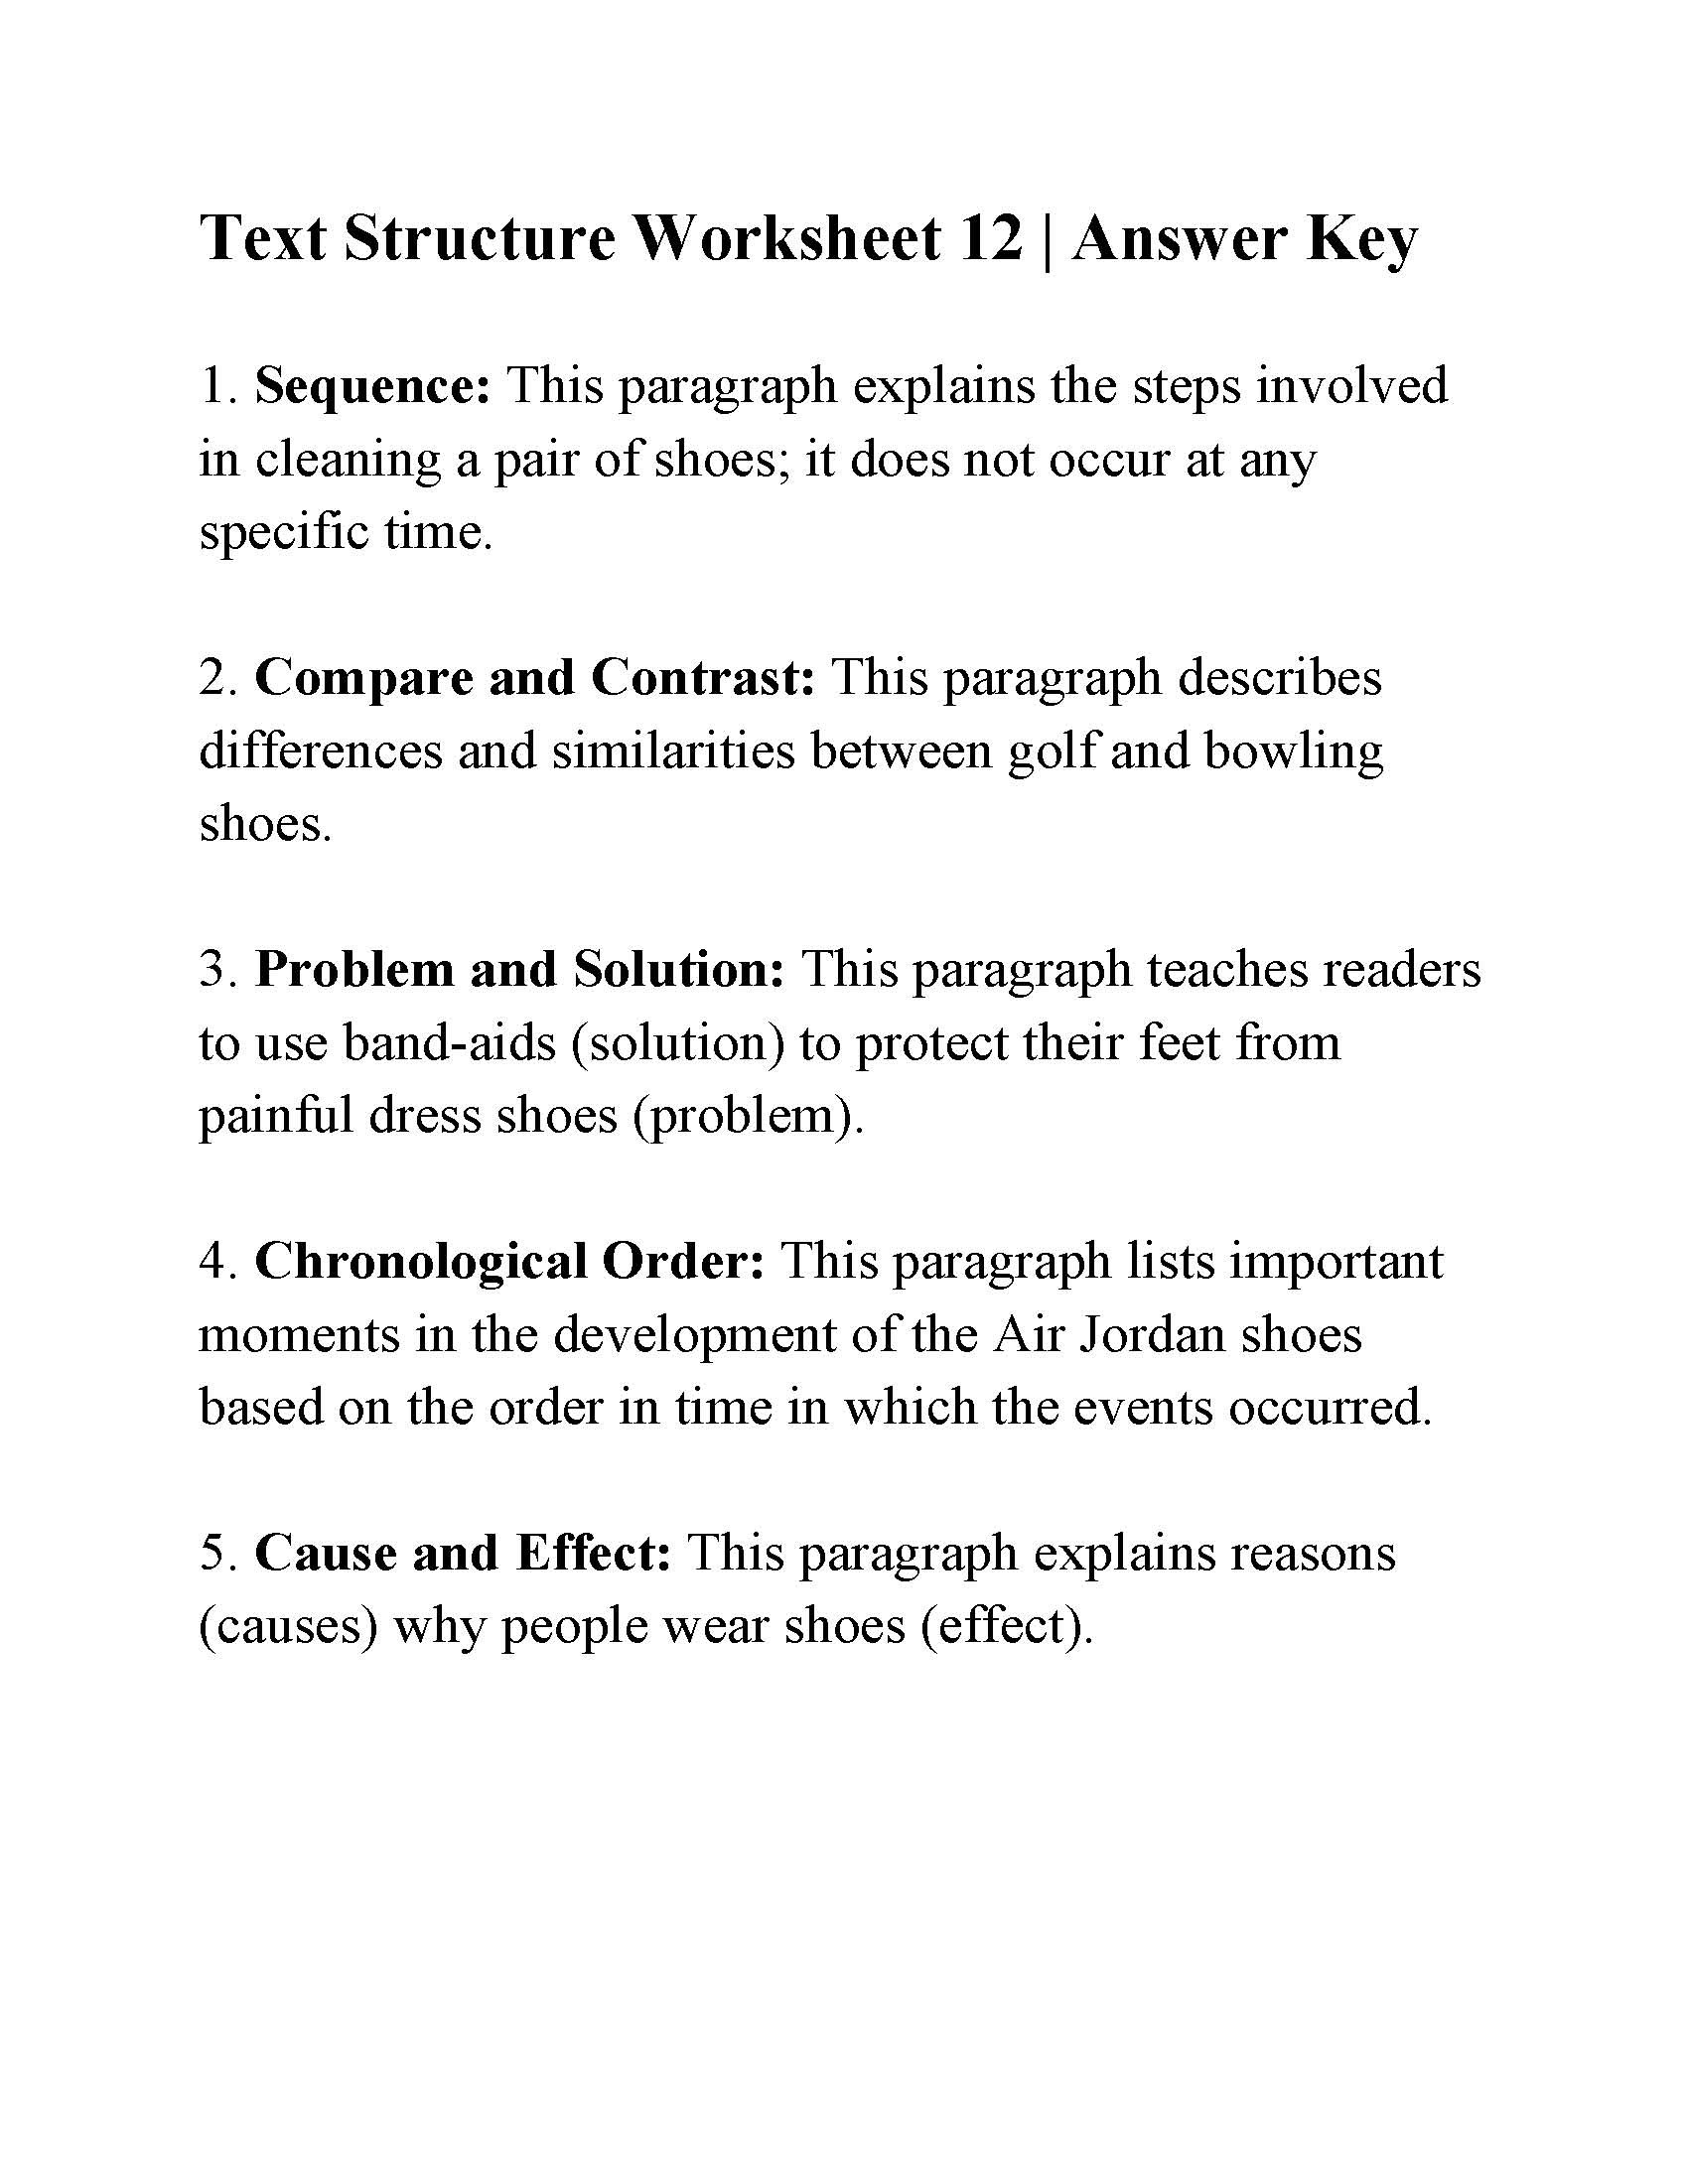 Text Structure Worksheets Grade 4 Text Structure Worksheet 12